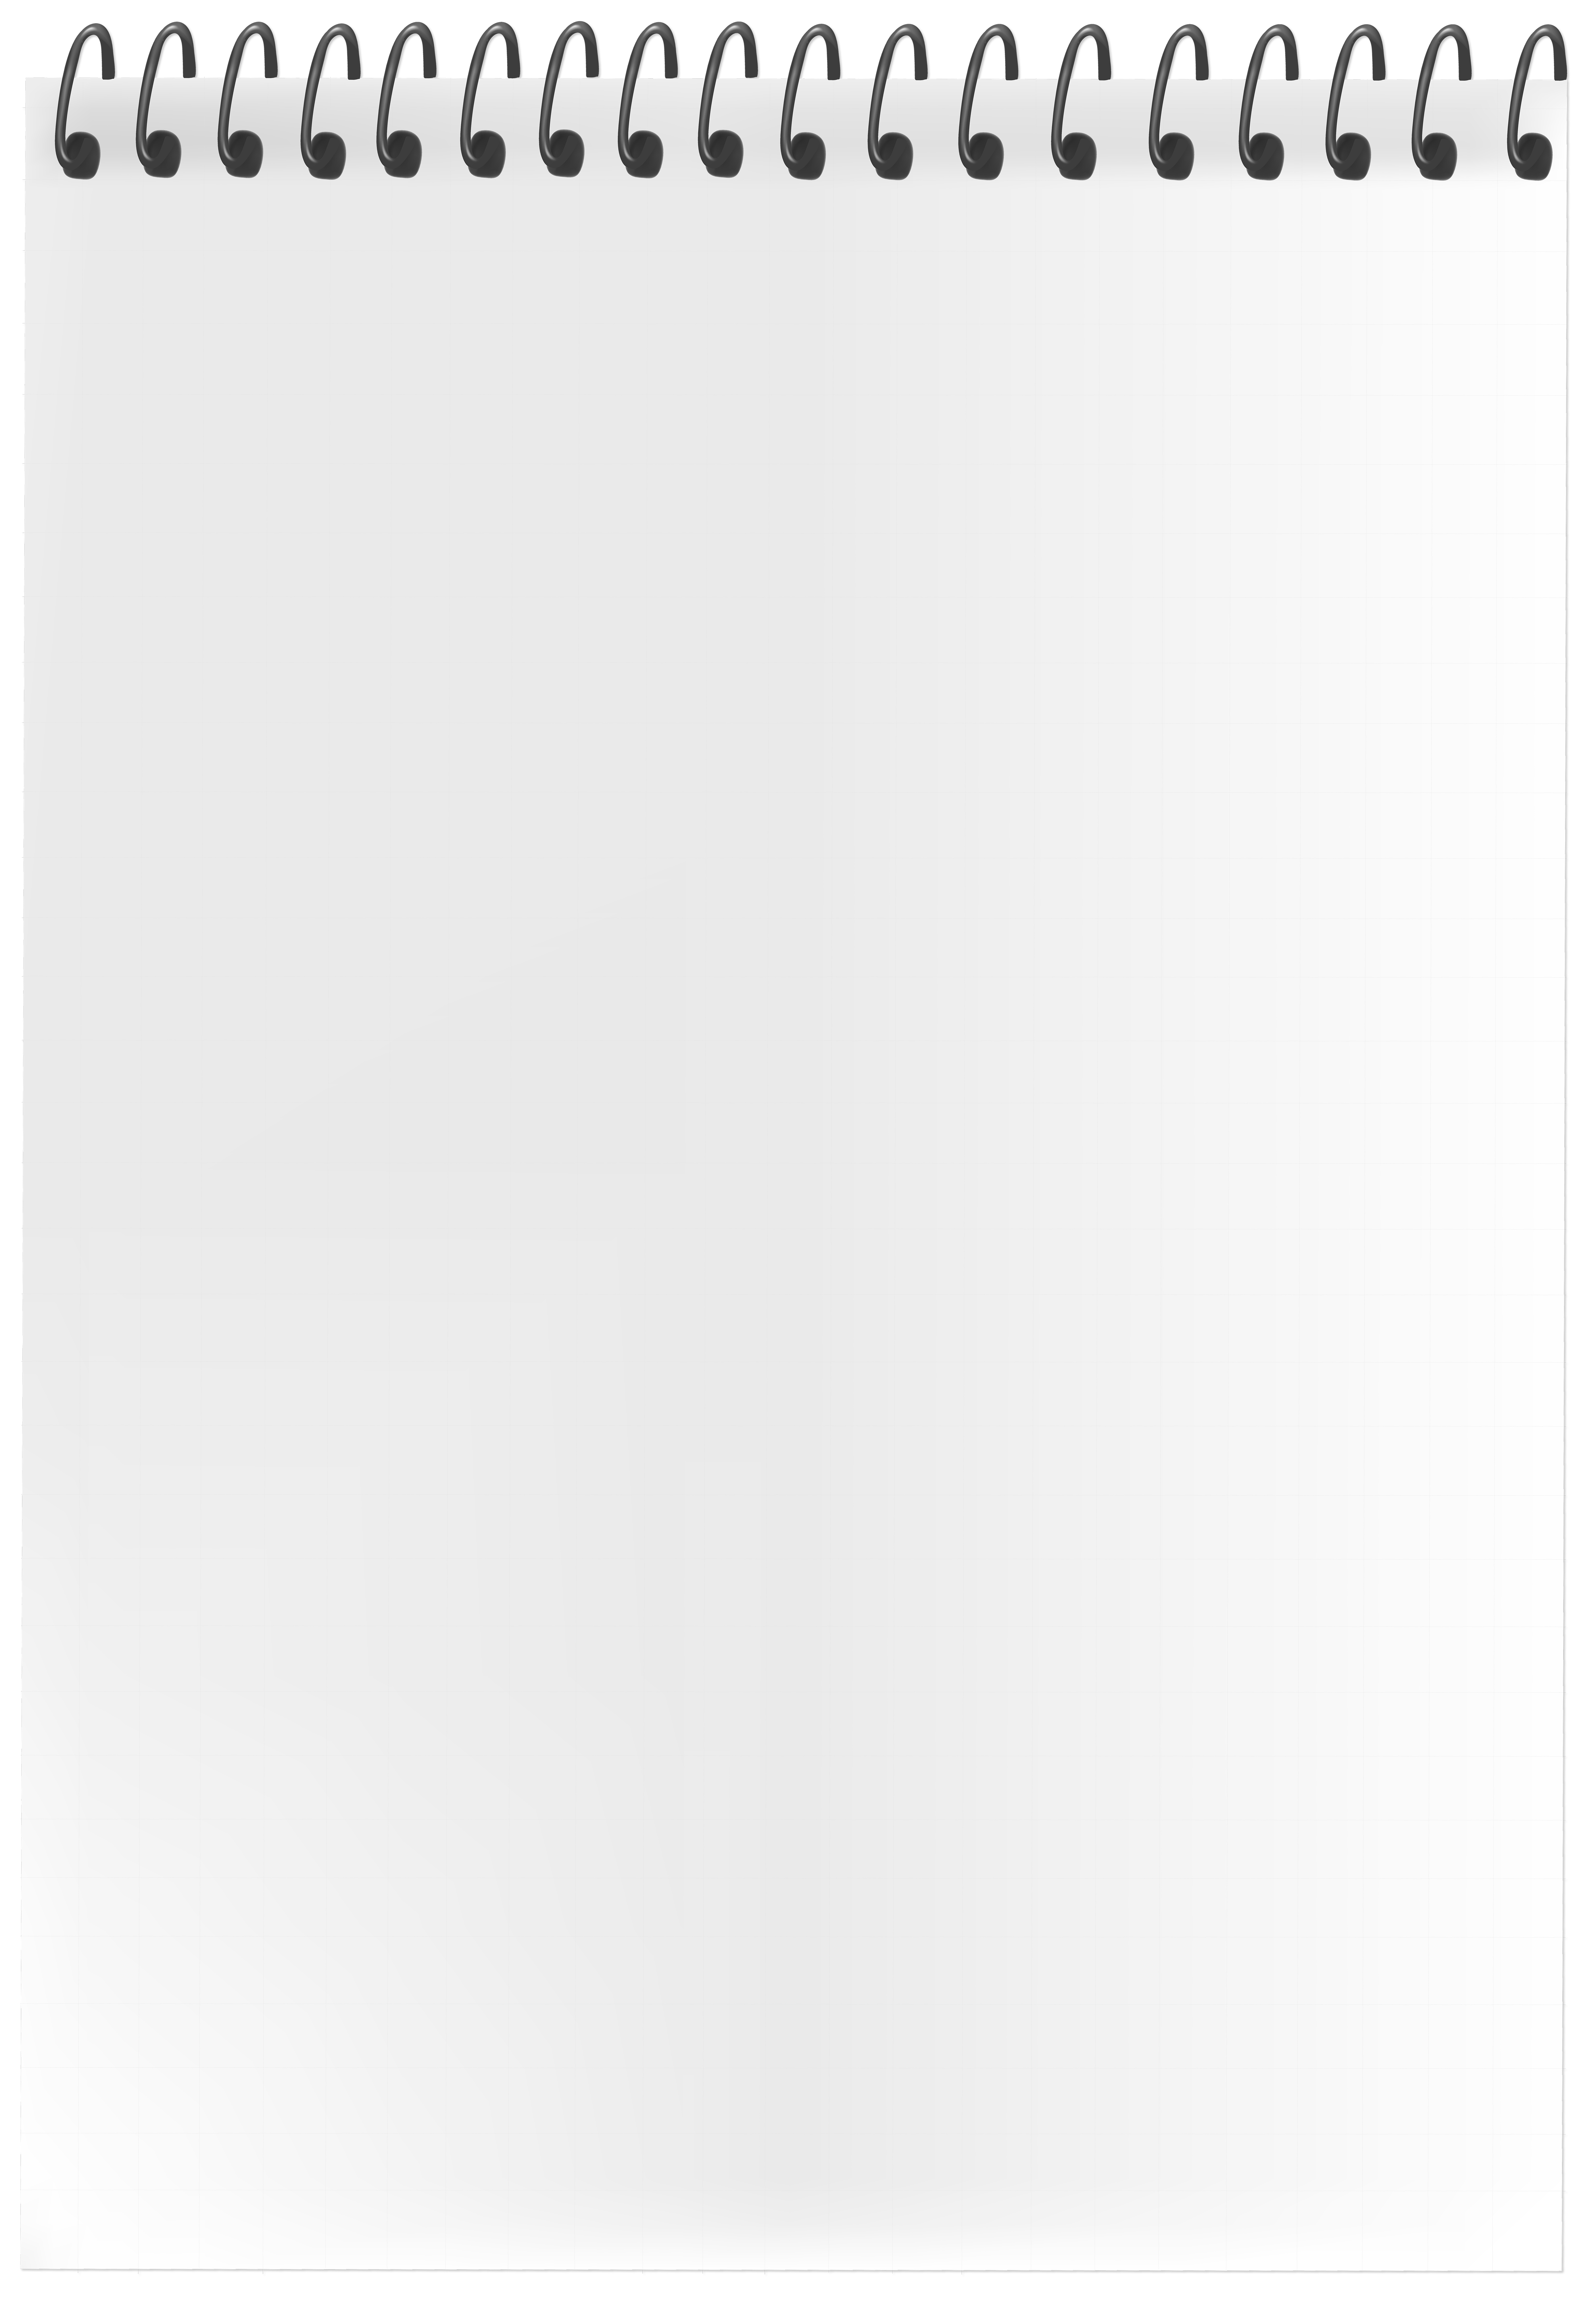 Spiral Blank Page PNG Clip Art Image.